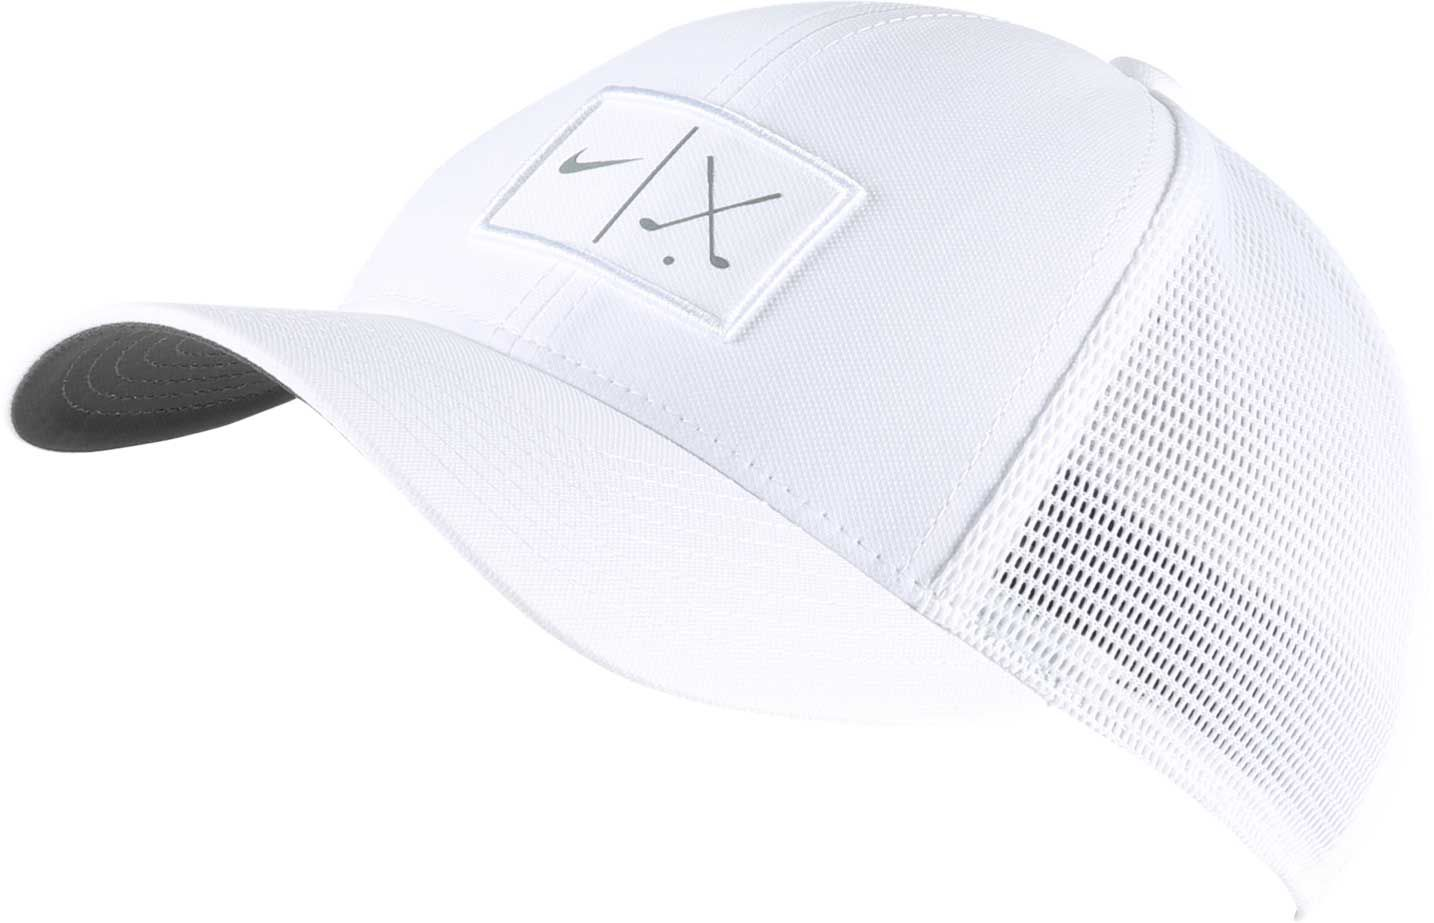 88d7fdbcbbea44 Nike Men's Mesh Golf Hat | DICK'S Sporting GoodsProposition 65 ...